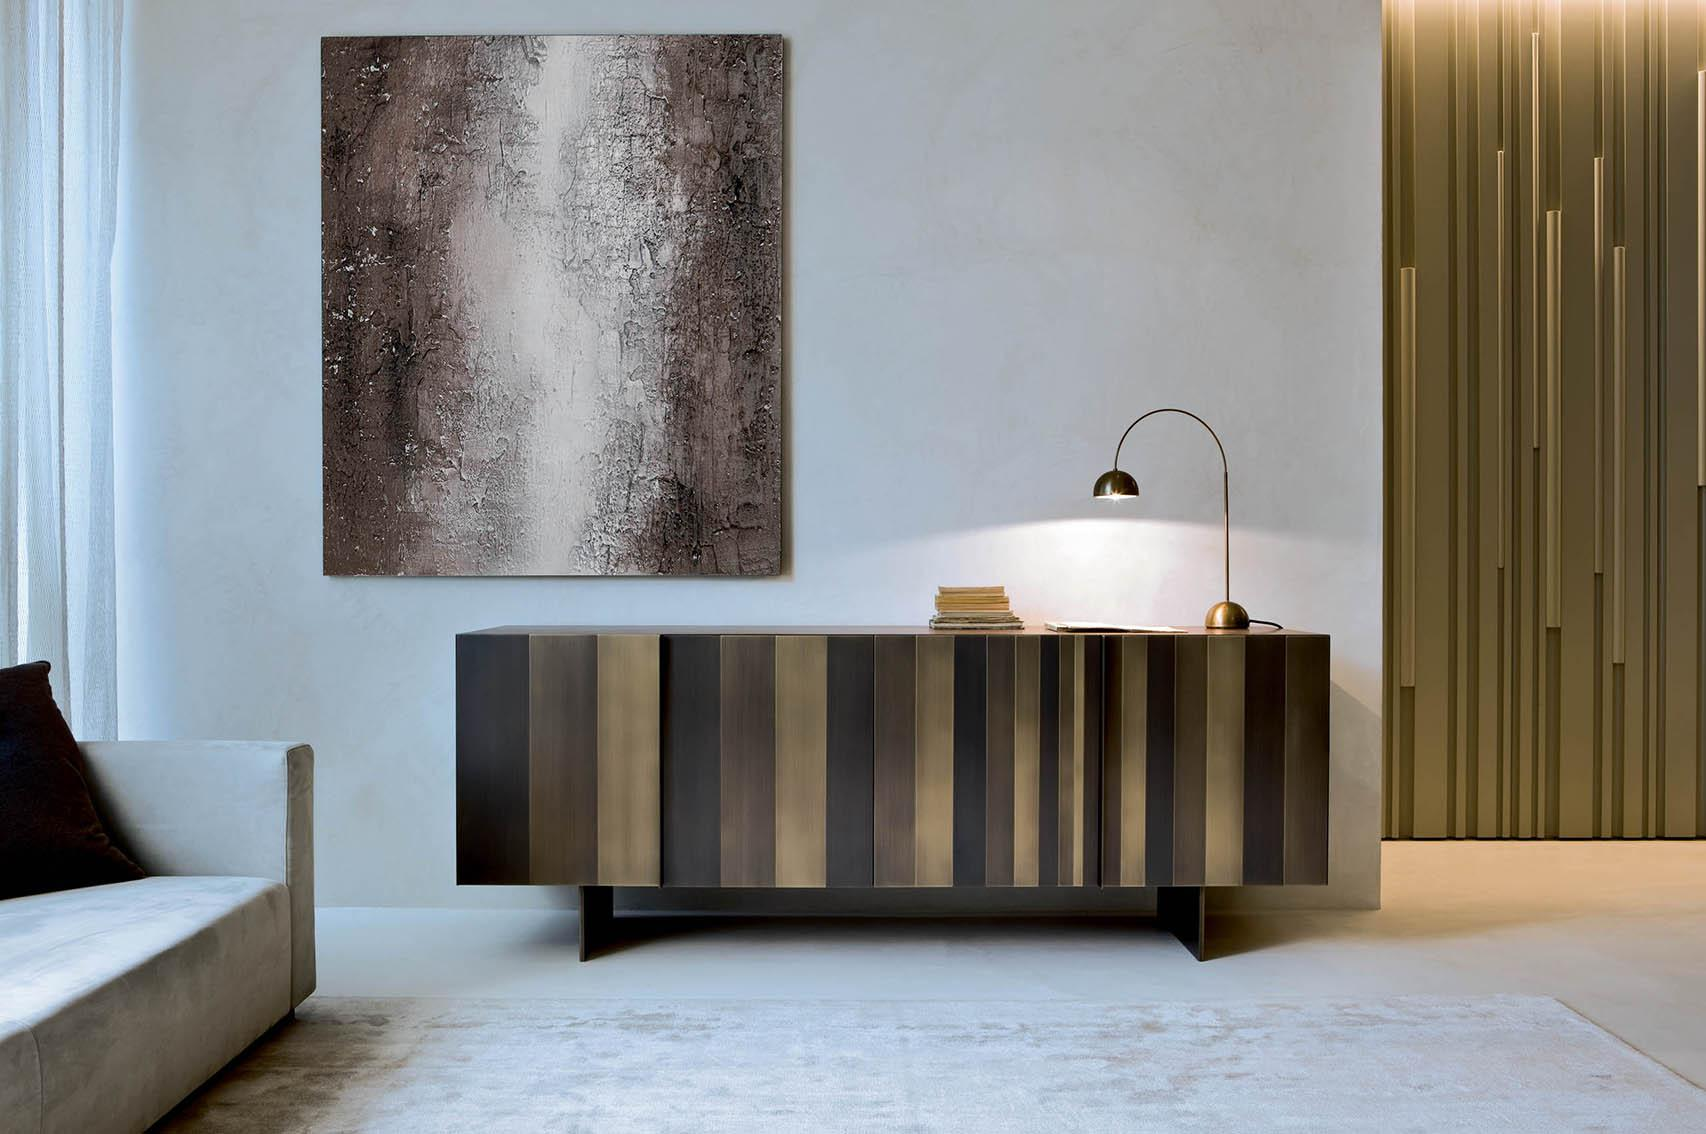 Laurameroni luxury modern artisanal sideboards and drawers for contemporary interior decor and design